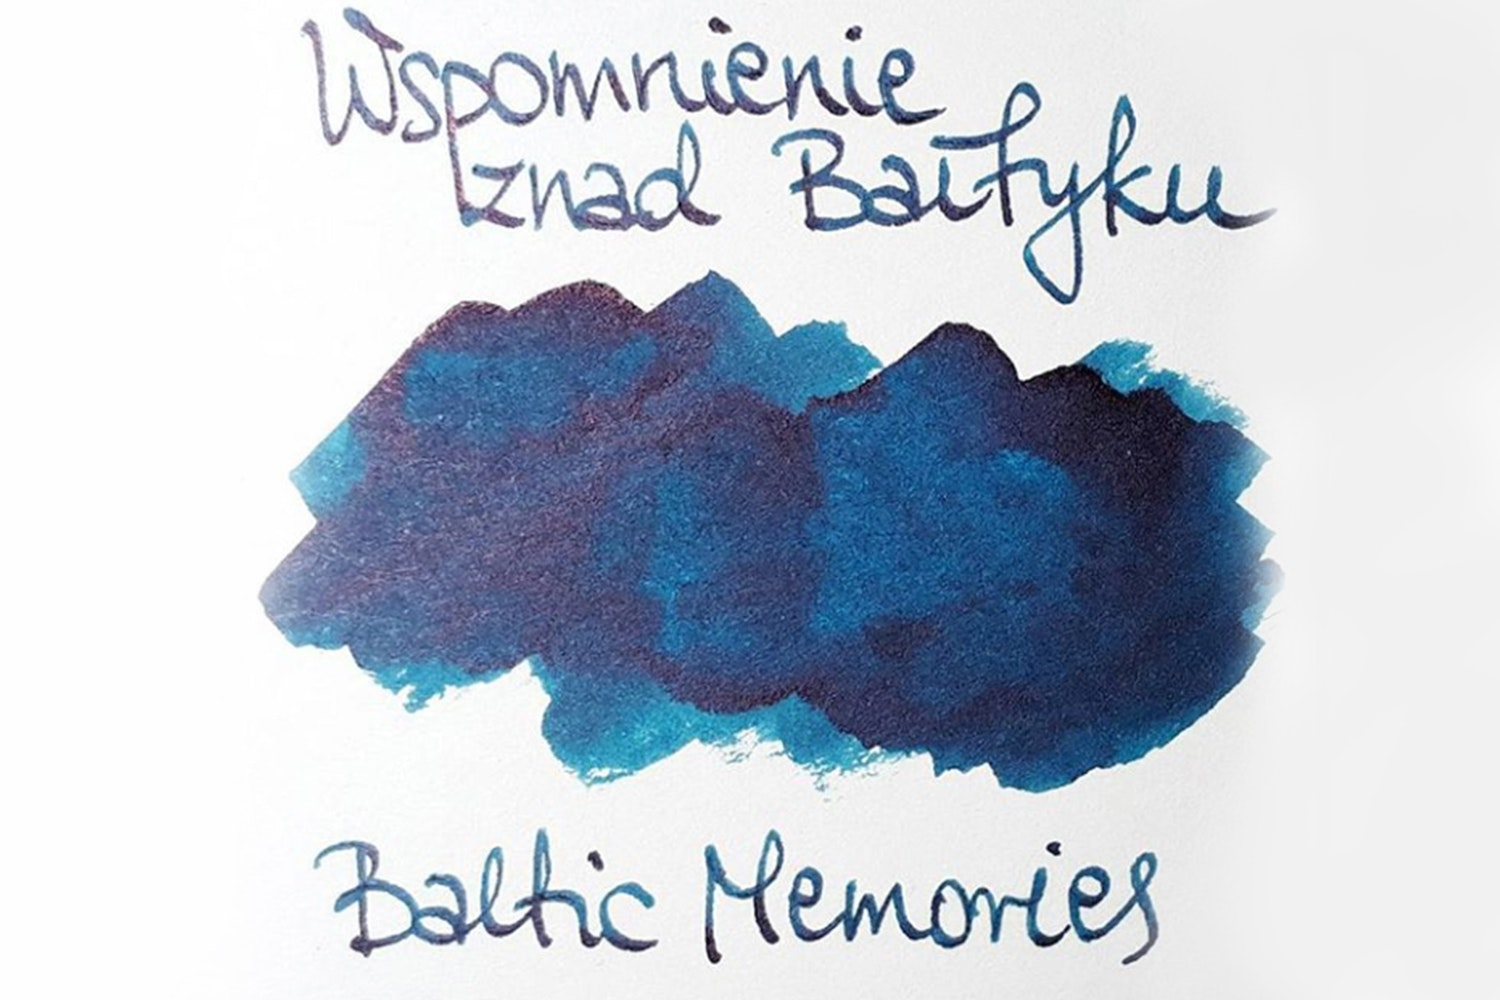 Baltic Memories